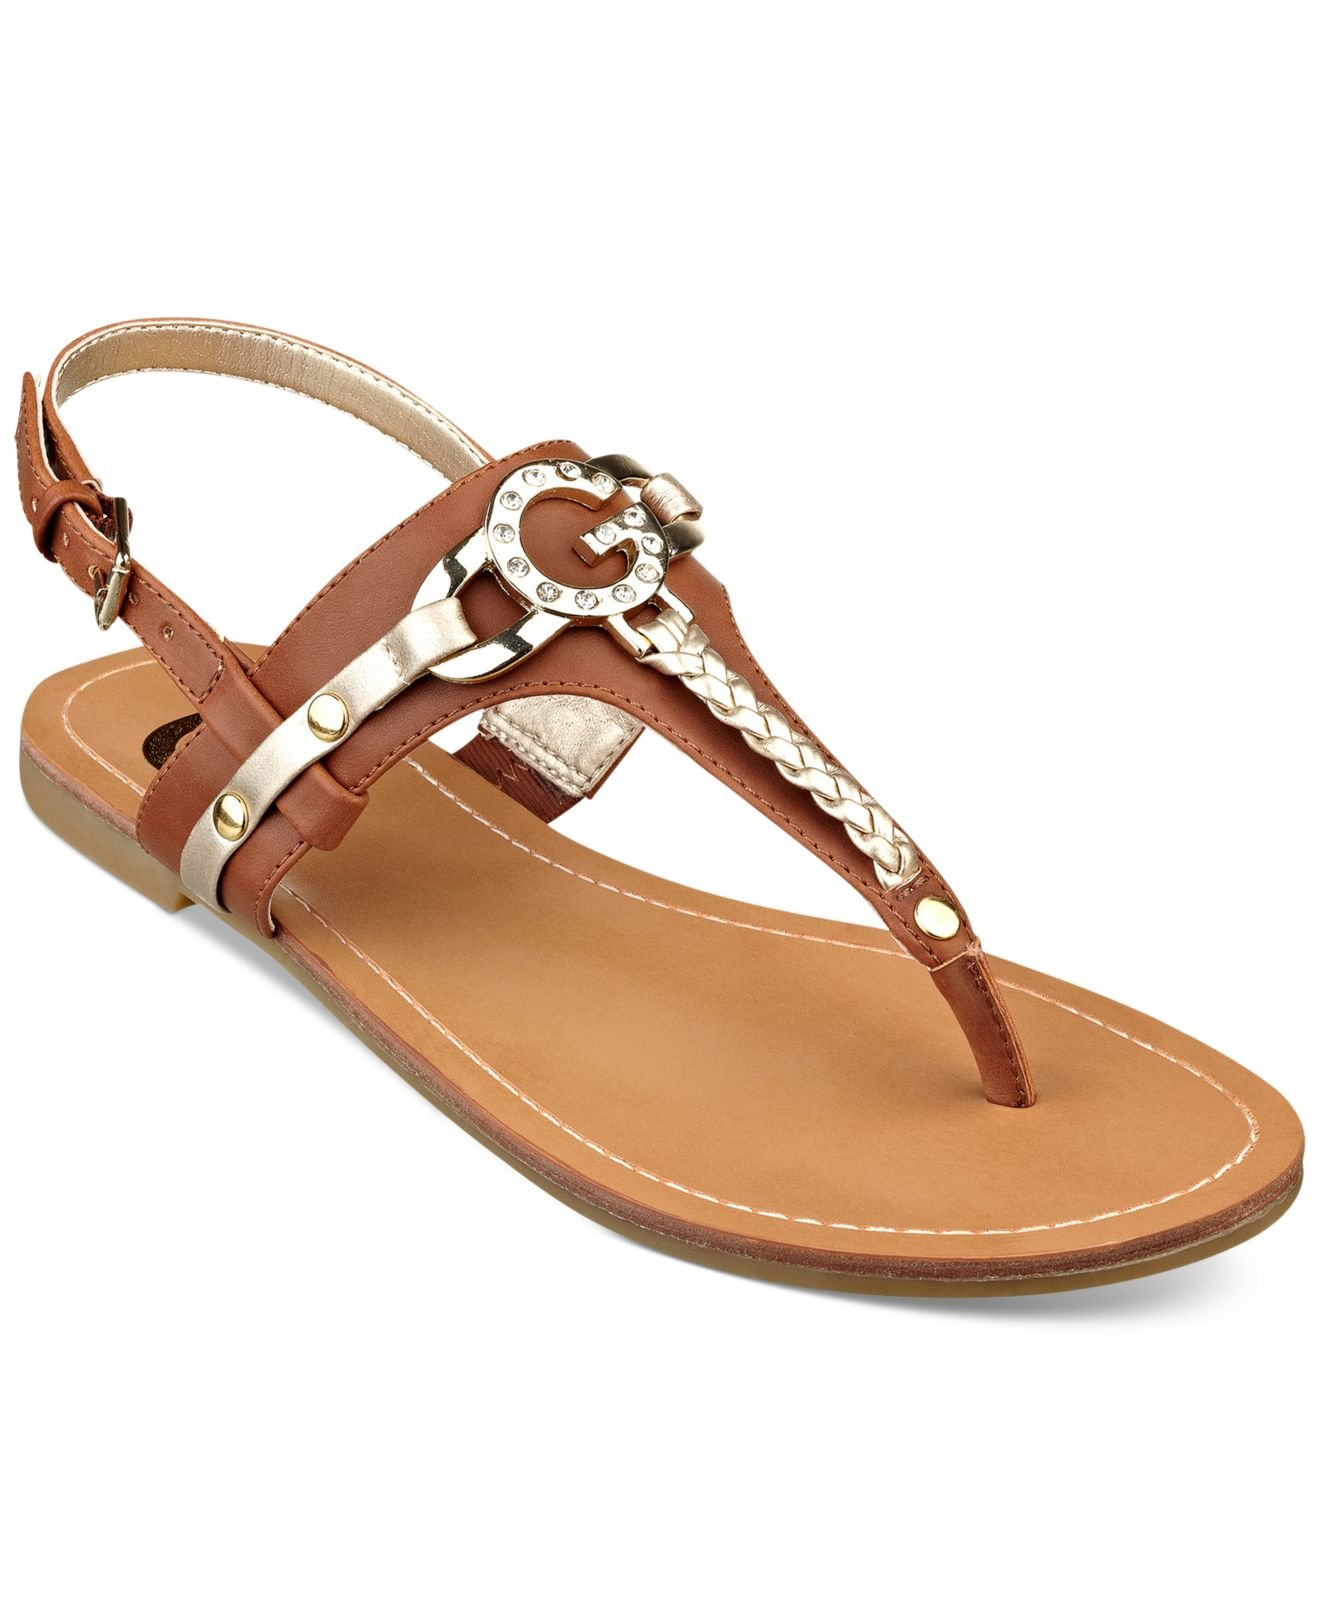 3eade6aa7e69 Lyst - G by Guess Women S Leed Flat Thong Sandals in Brown